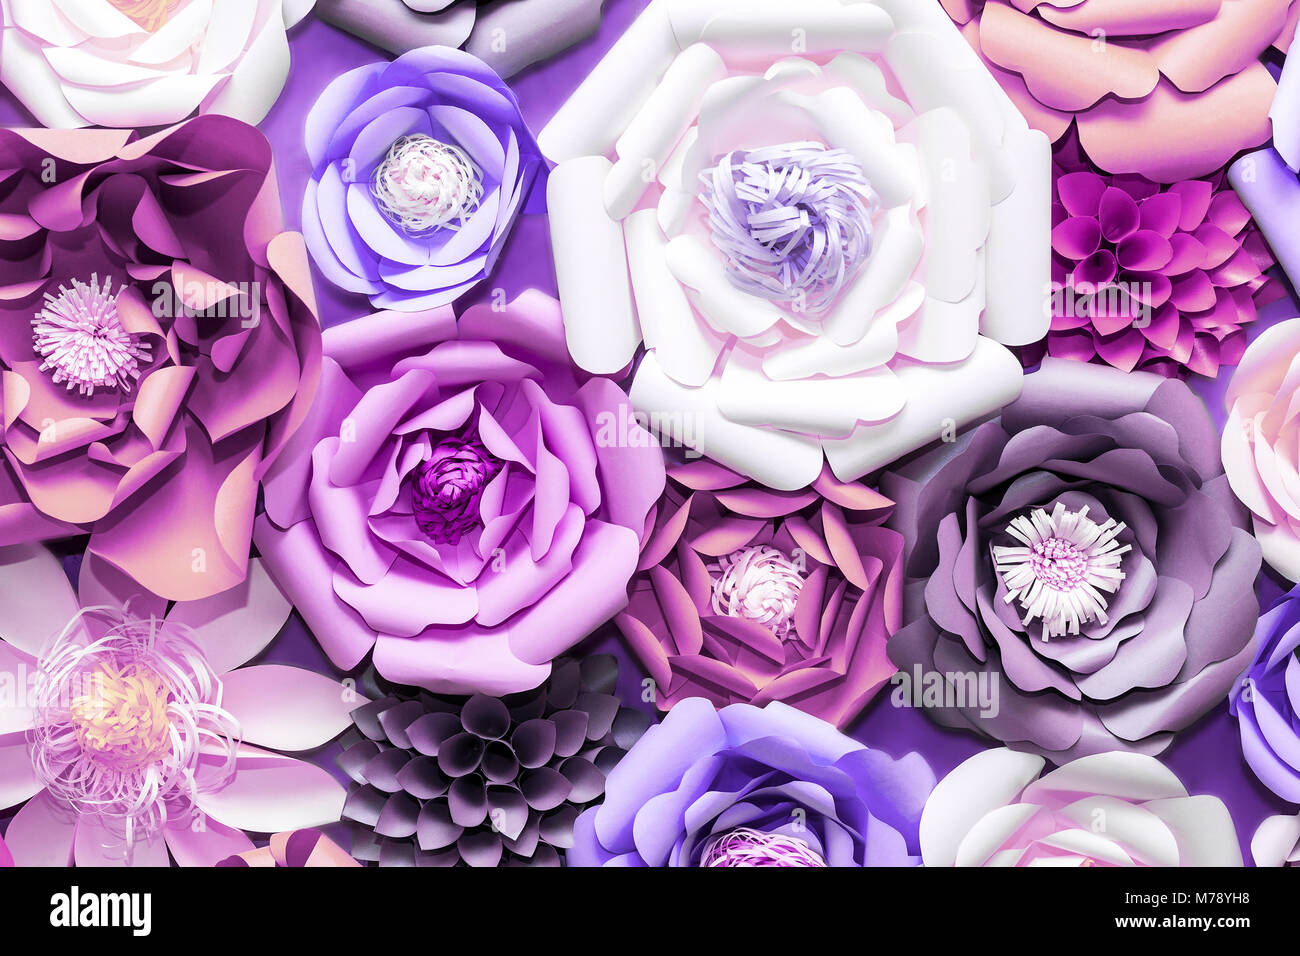 Colorful paper flowers on wall handmade artificial floral stock colorful paper flowers on wall handmade artificial floral decoration spring abstract beautiful background and texture ultraviolet tone color of t mightylinksfo